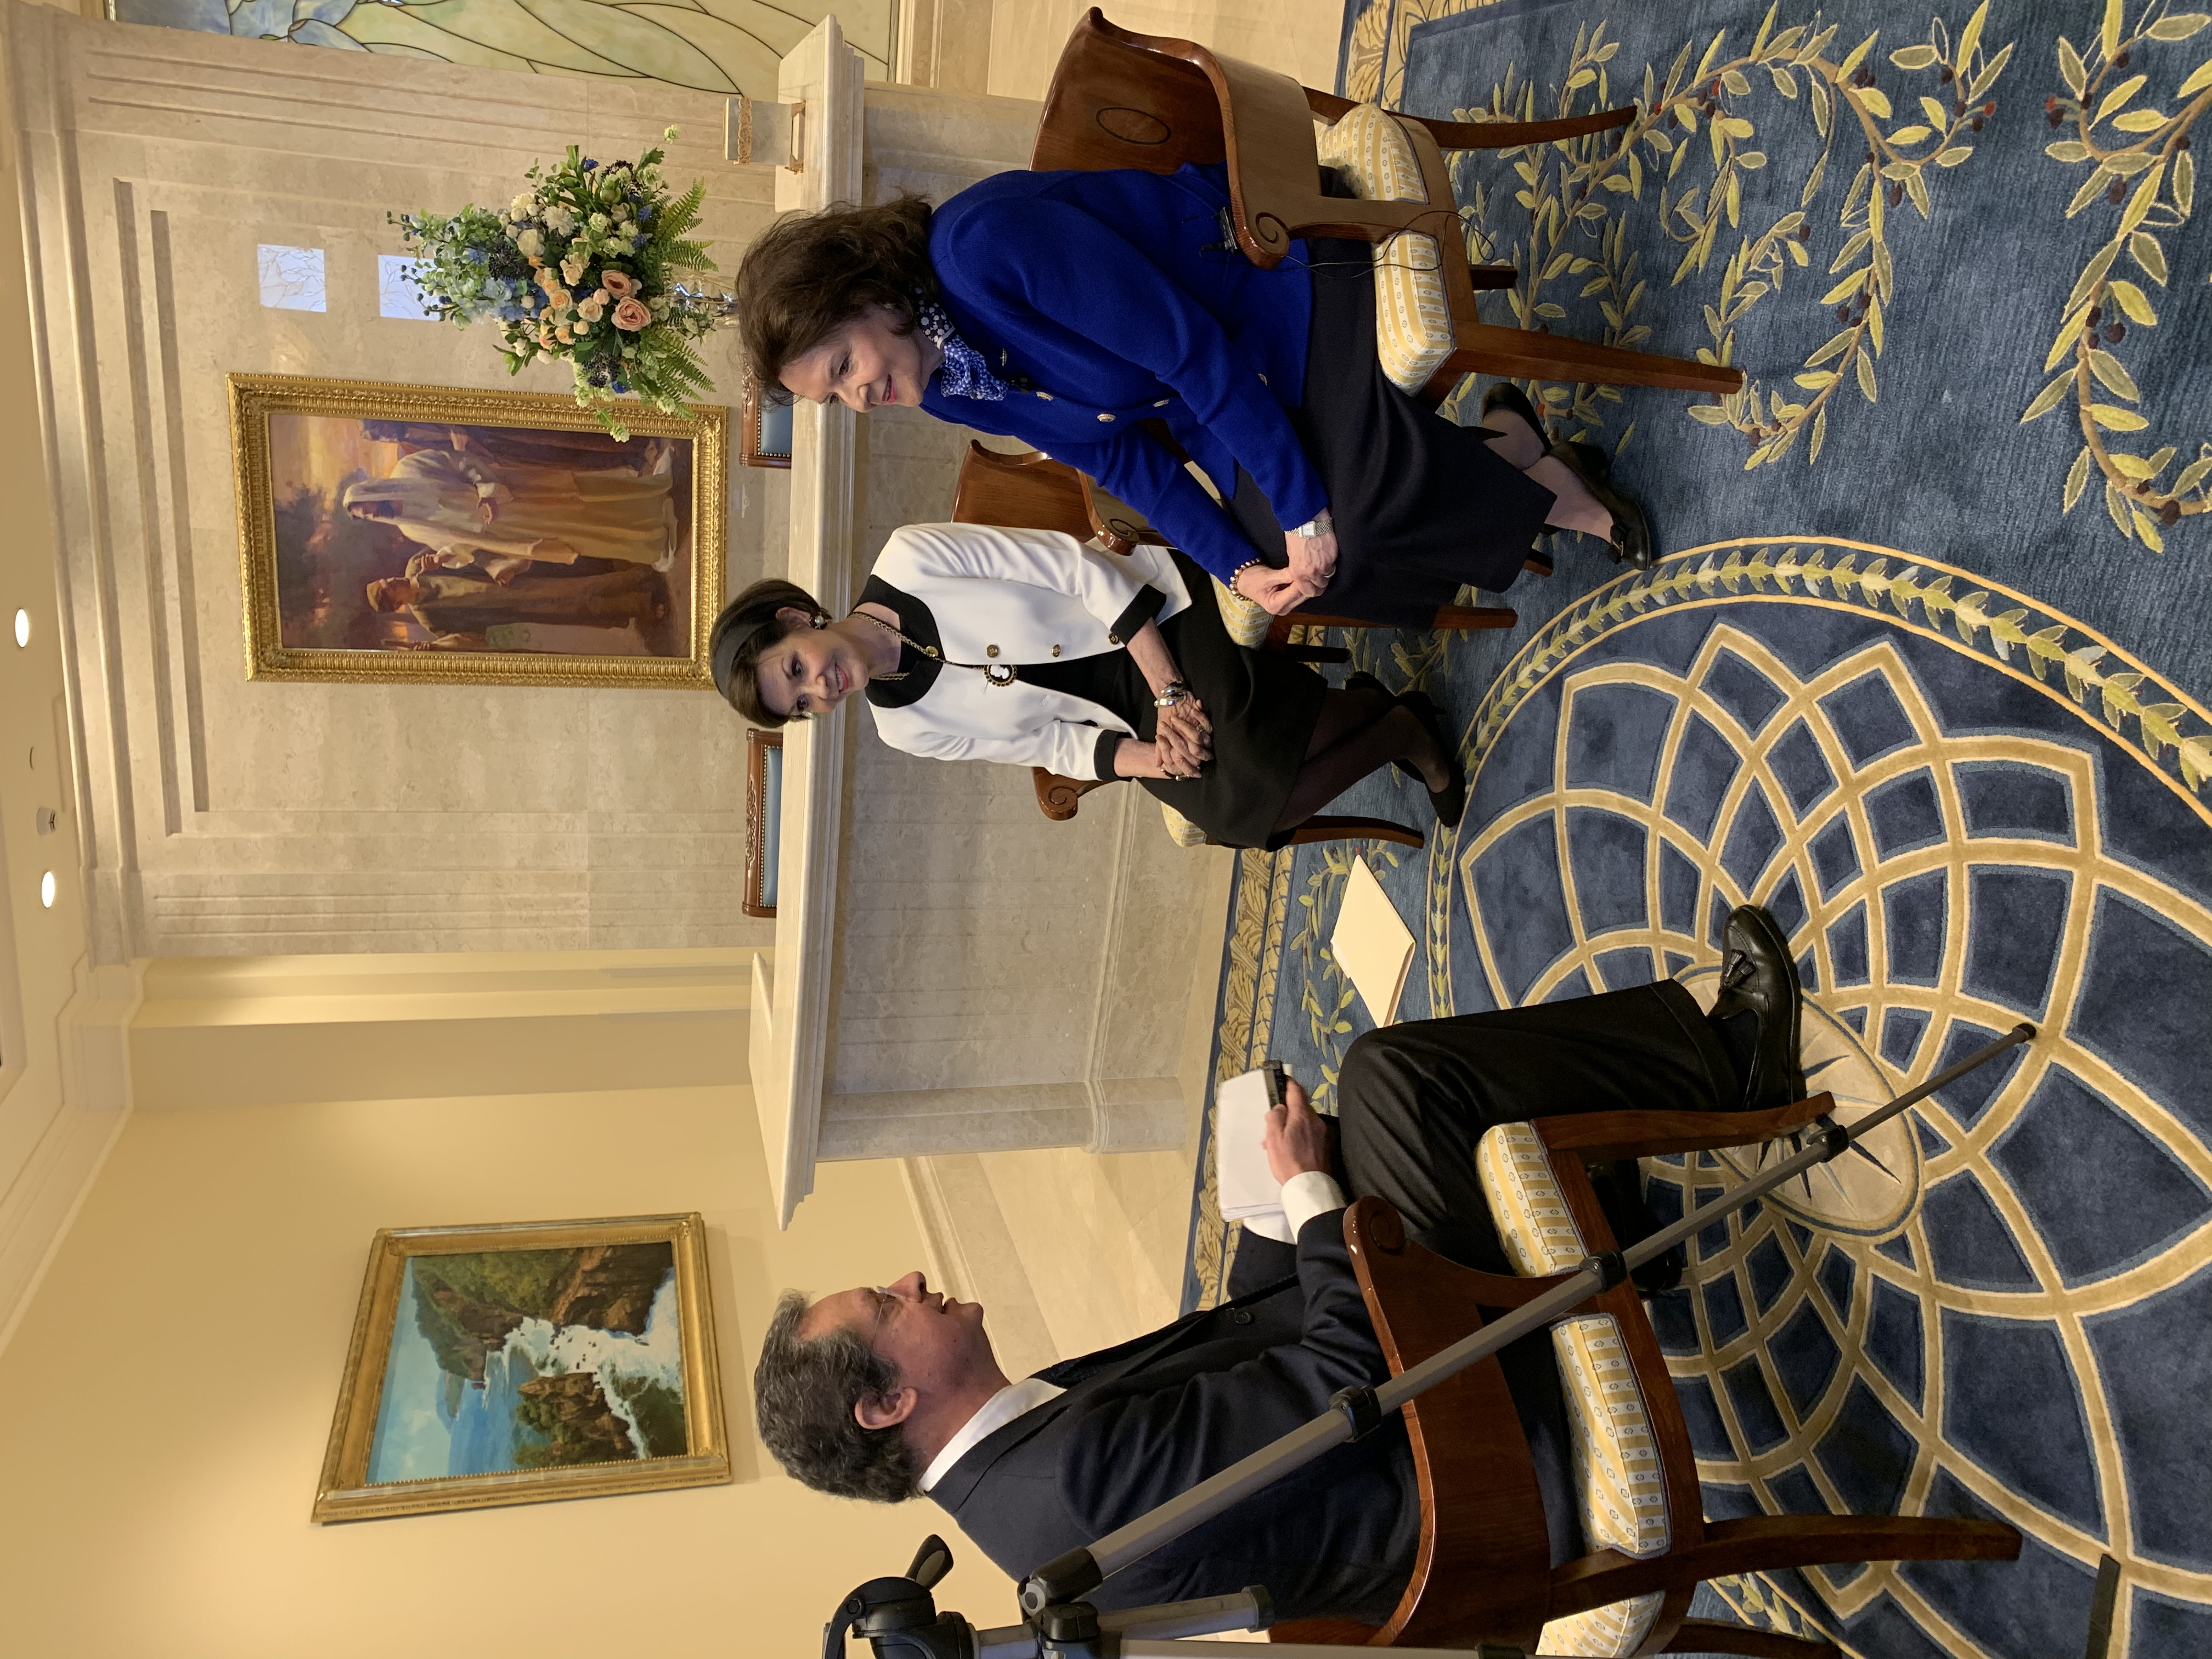 Sister Wendy Nelson, right, and Sister Kristen Oaks interview with Paolo Mastrolilli, the New York correspondent for the national Italian newspaper La Stampa, in the lobby of the Rome Italy Temple on March 11.